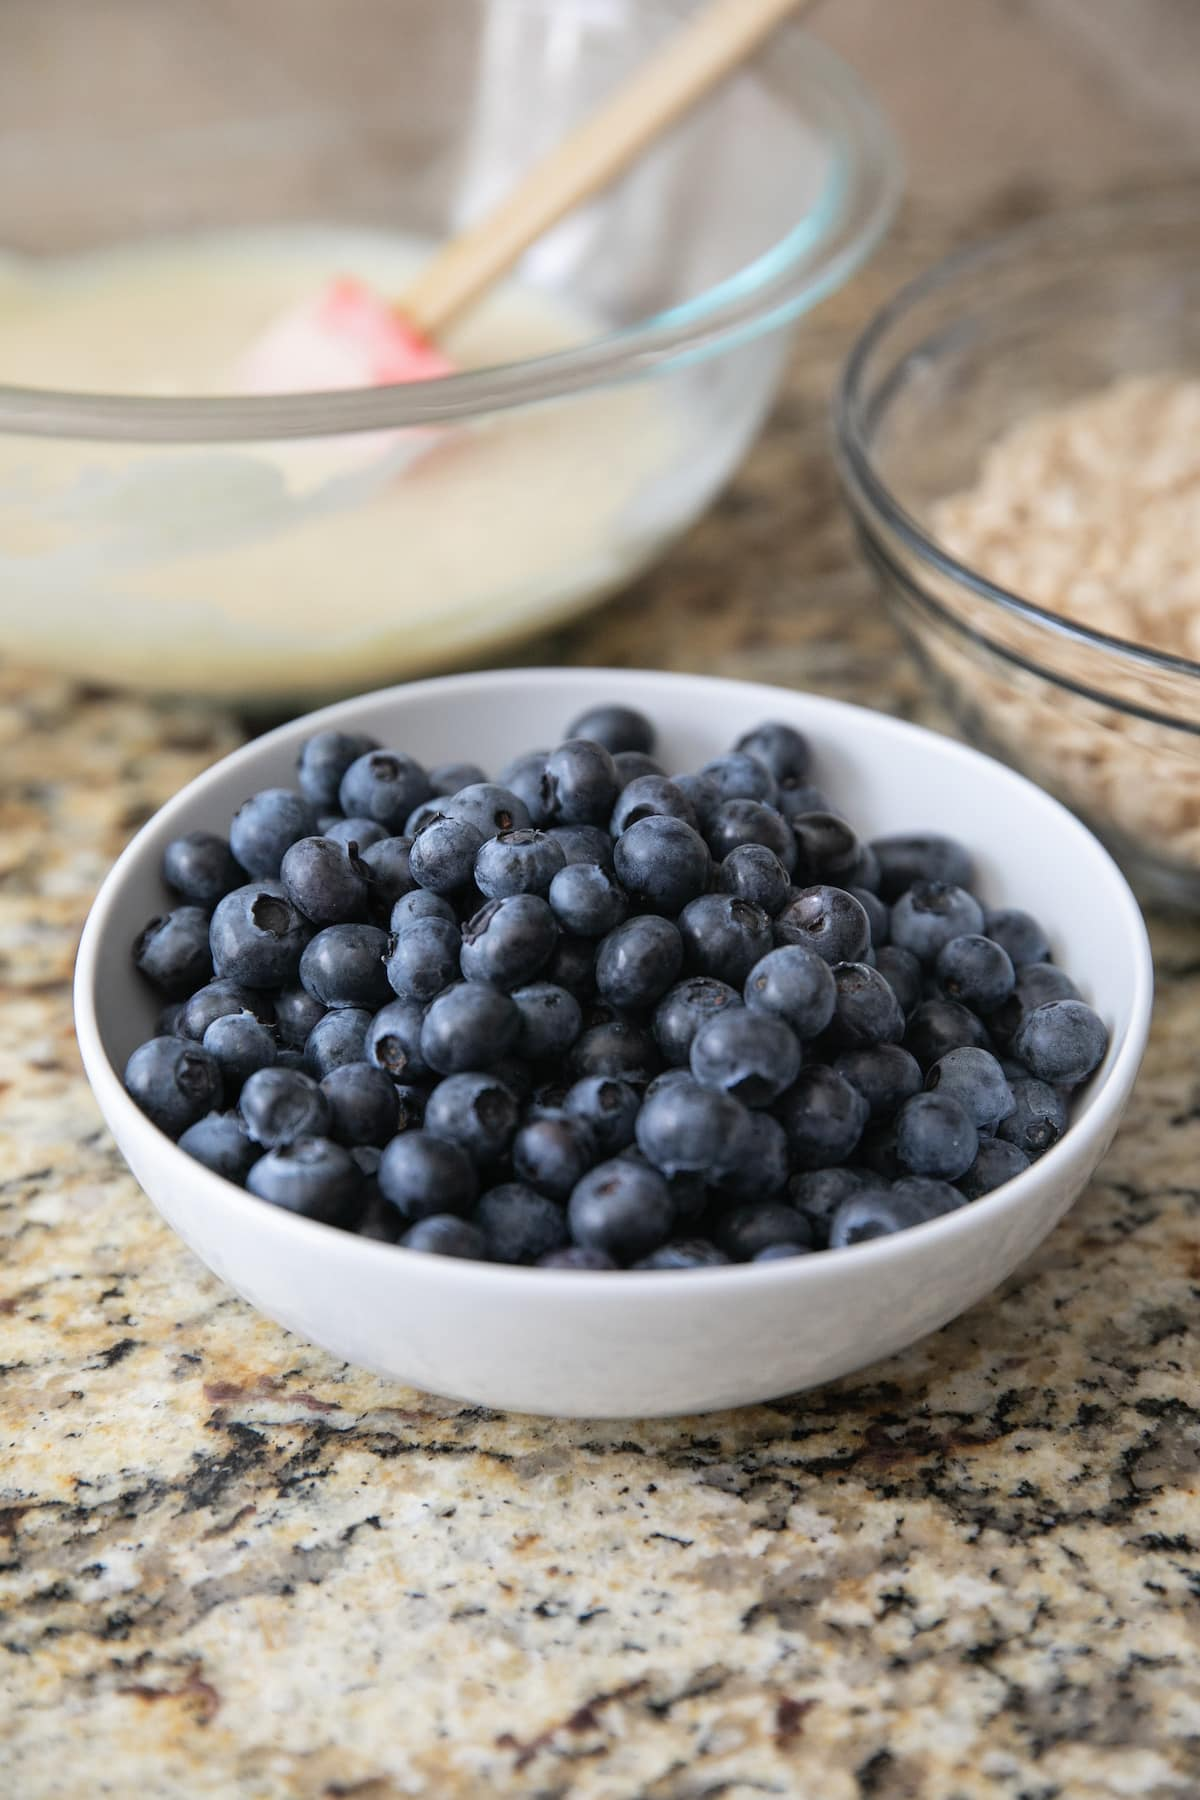 washed room temperature blueberries in a white bowl with two other bowls behind it